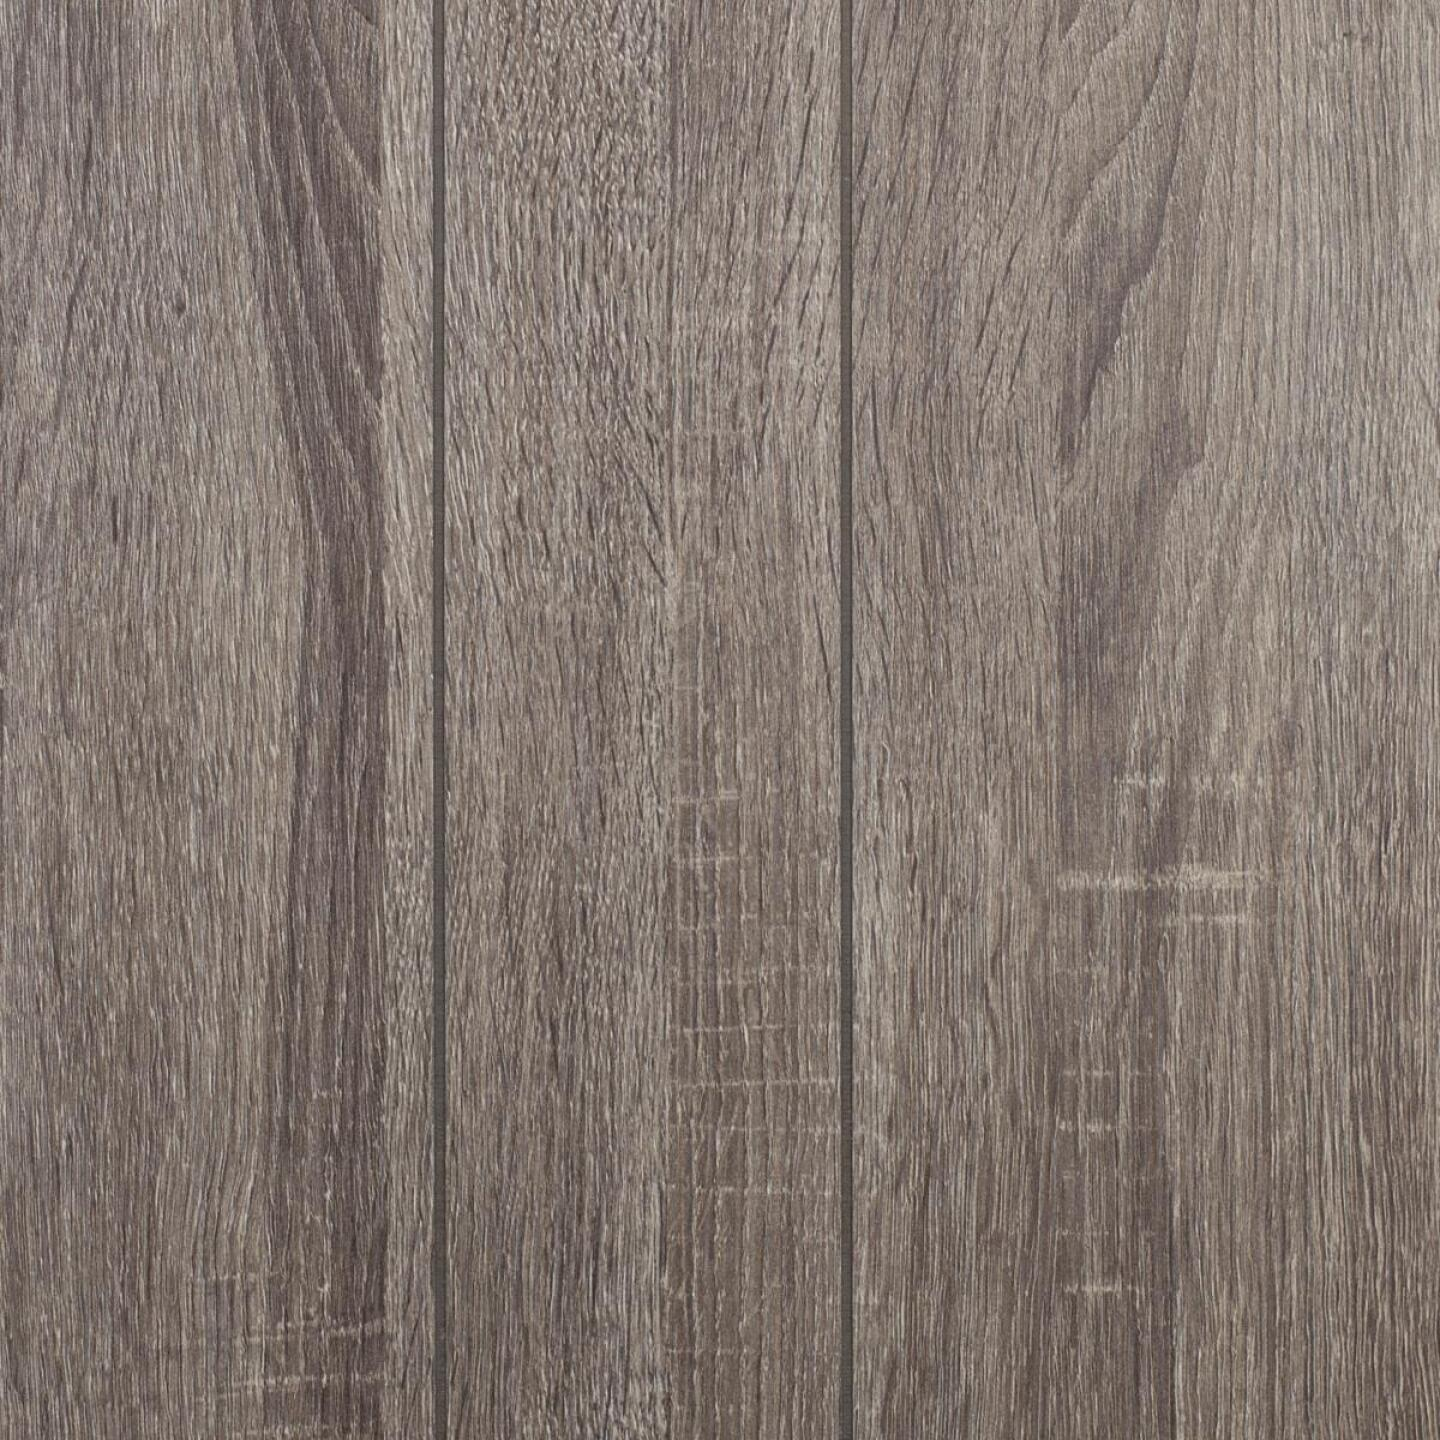 Global Product Sourcing 4 Ft. x 8 Ft. x 1/8 In. Antique Hickory Random Groove Profile Wall Paneling Image 1